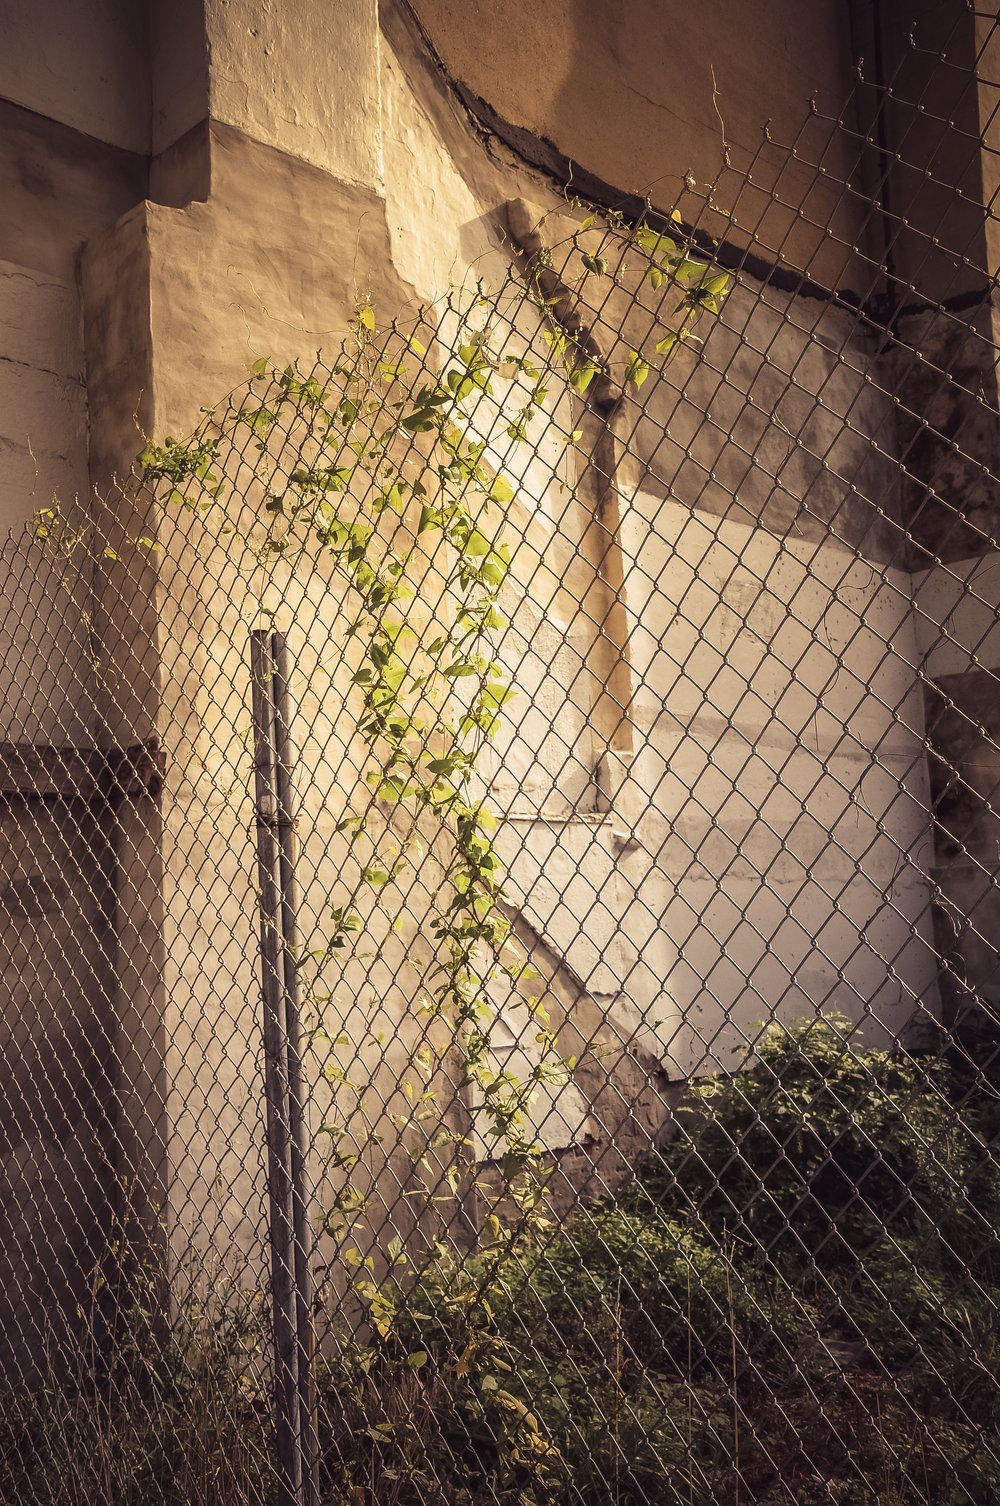 Vines in a Vacant Lot in Baltimore City Photo: Rose Anderson, August 2018